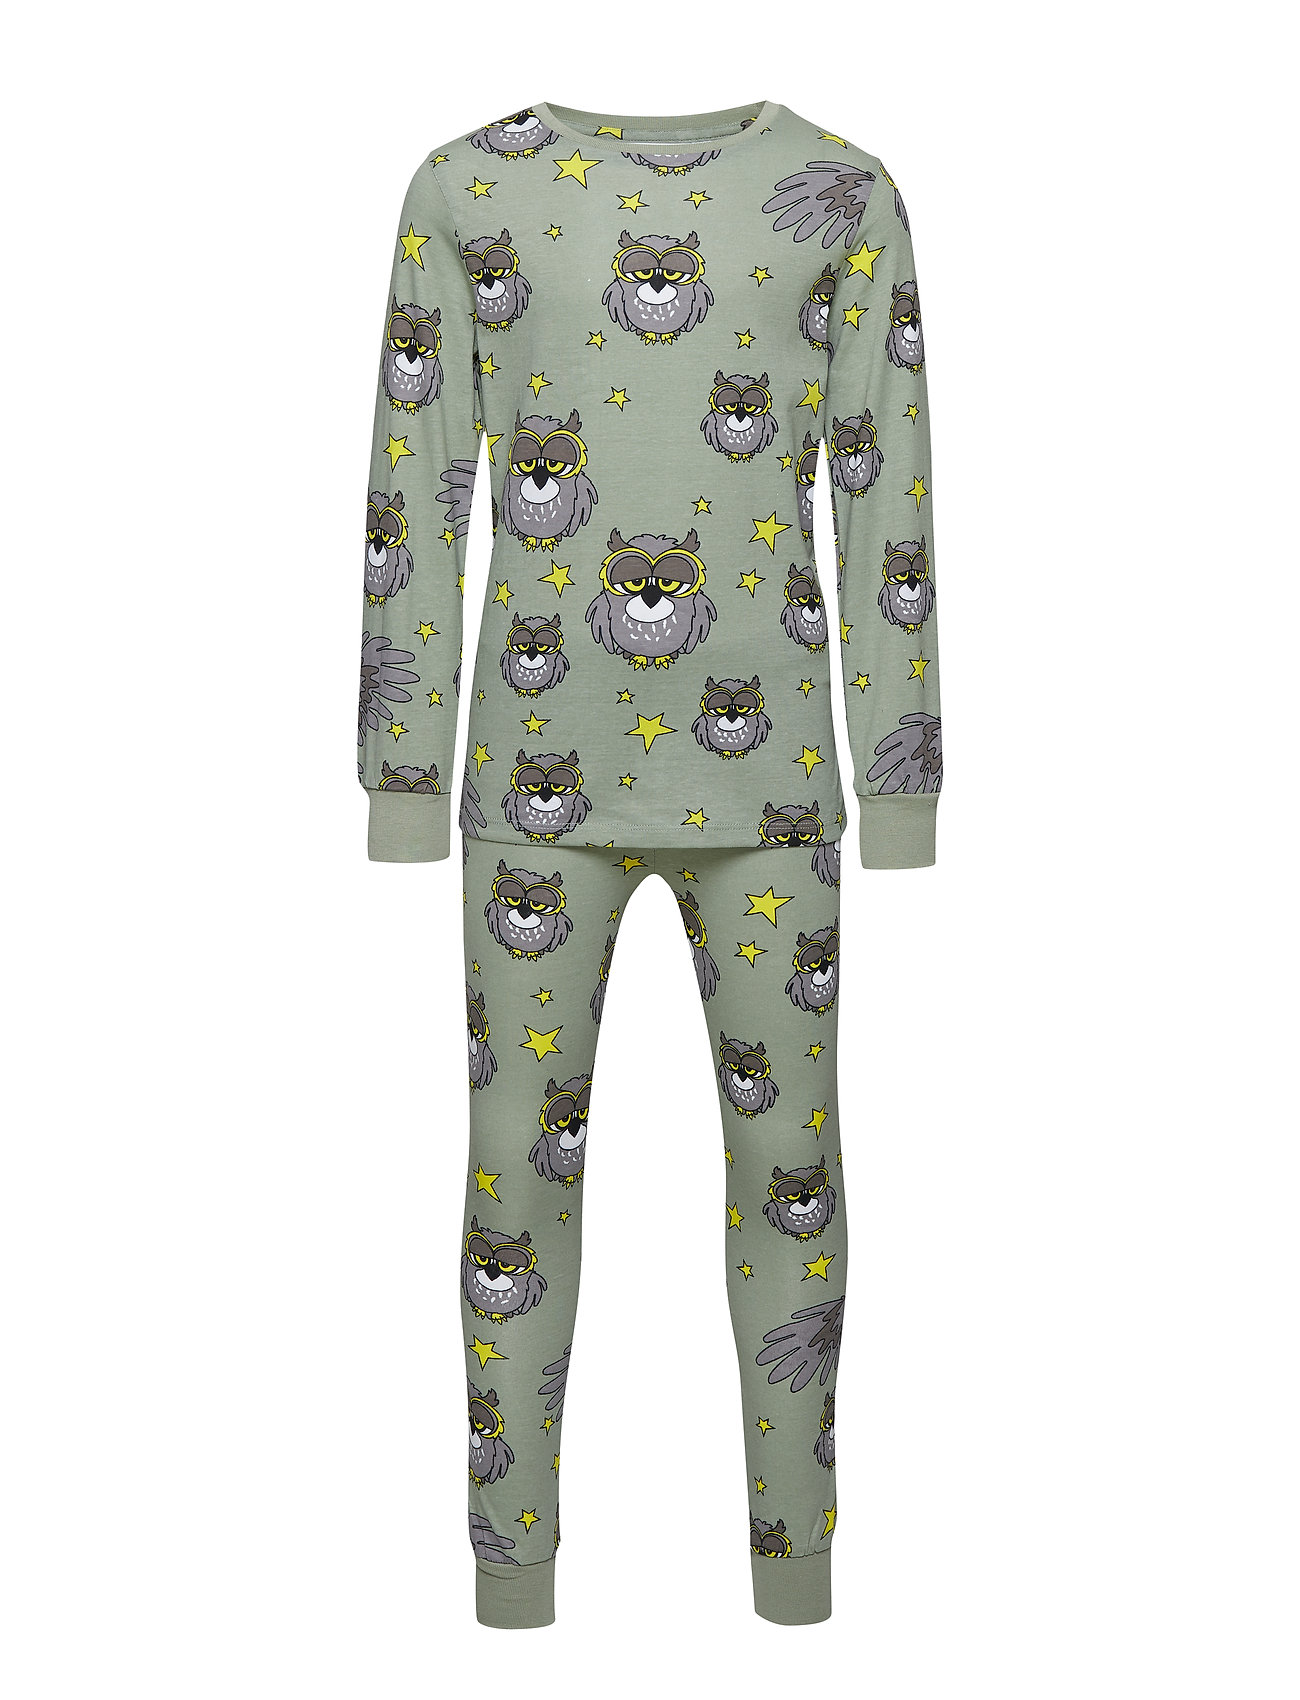 Tao & friends PJs Two-piece UGGLAN - LIGHT GREEN